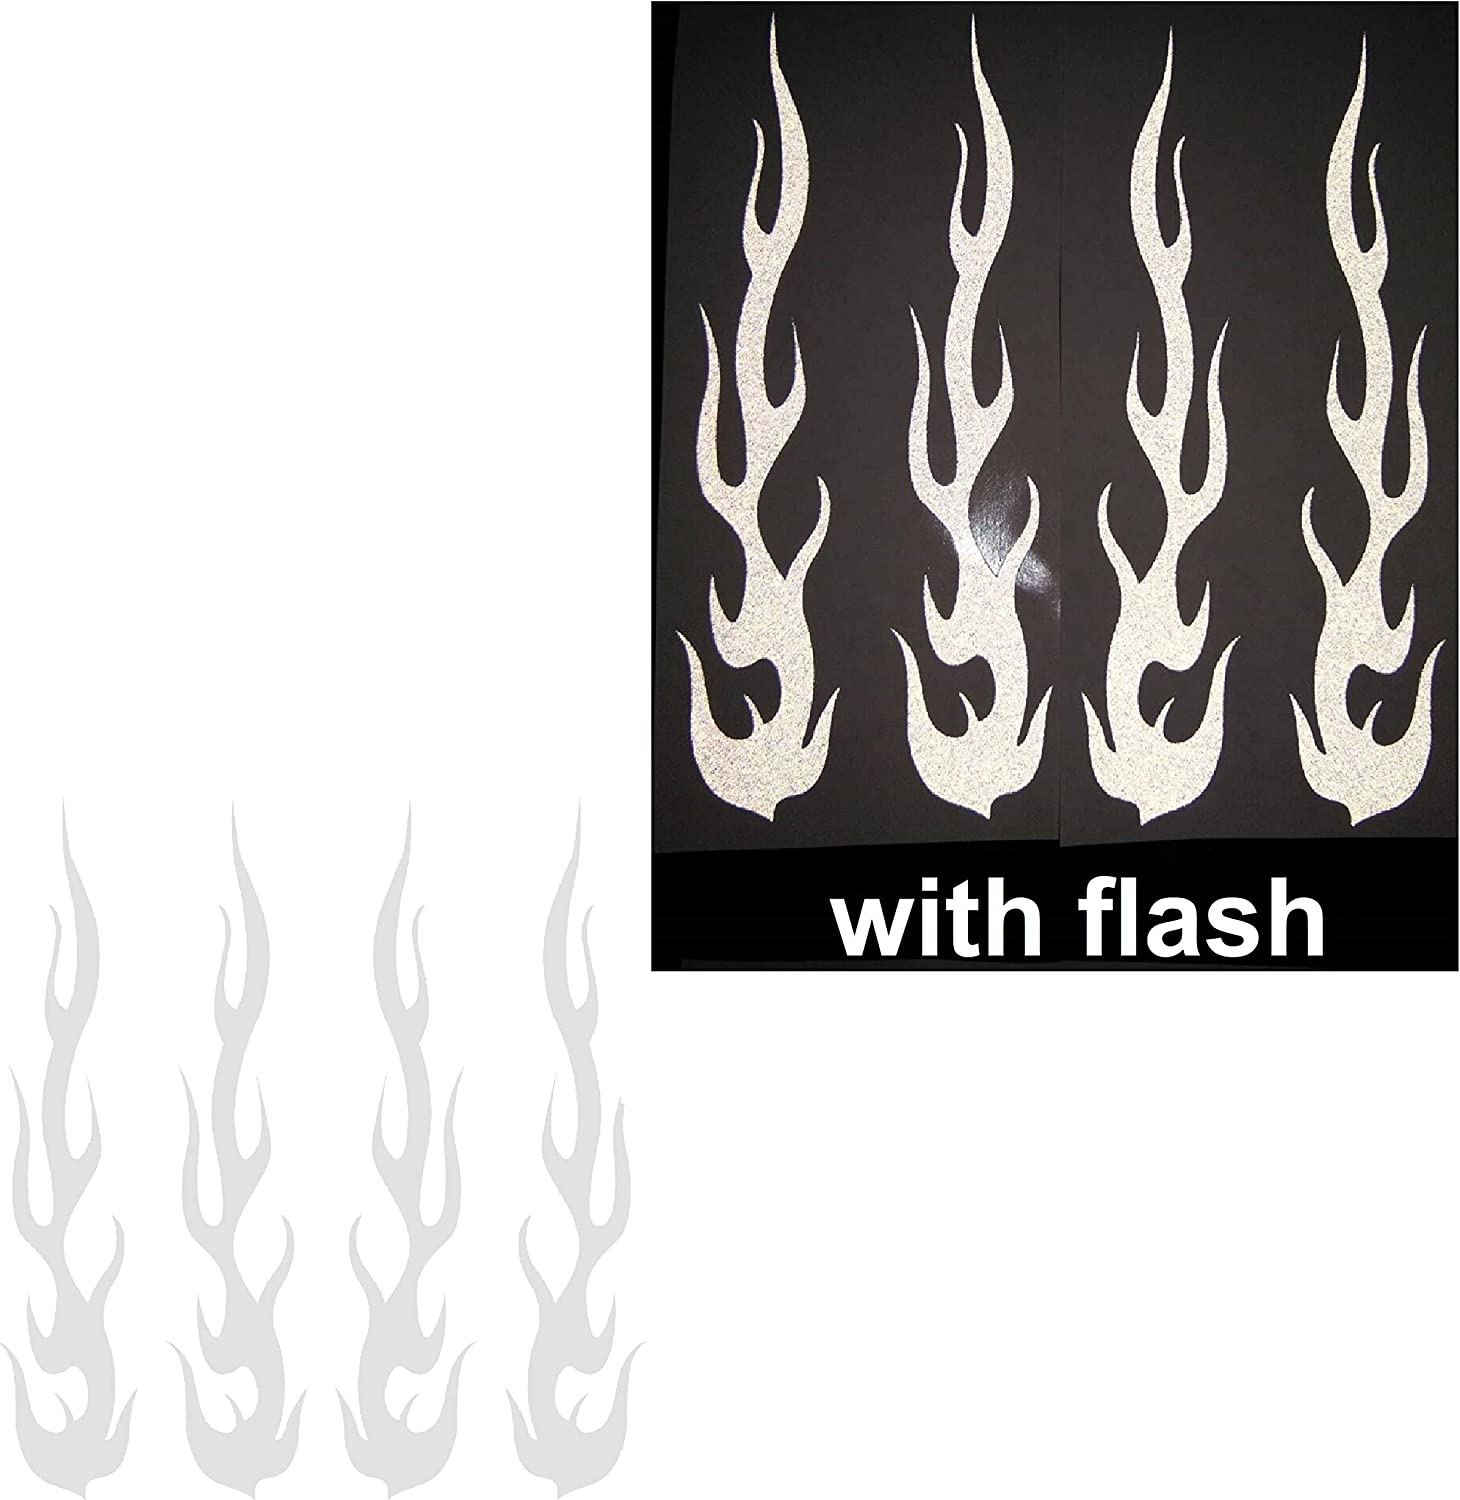 "White Hot Rod Fire Tribal Flame Ignite Flames Retro 3M Reflective Reflector Decal Sticker 1""x5"" Flash Night Vinyl PVC For Sport Motorbike Bike Motorcycle Bicycle Helmet Racing Car Door Window Tailgate Truck Trunk Side Rear Laptop Notebook Mac Decal Safety"